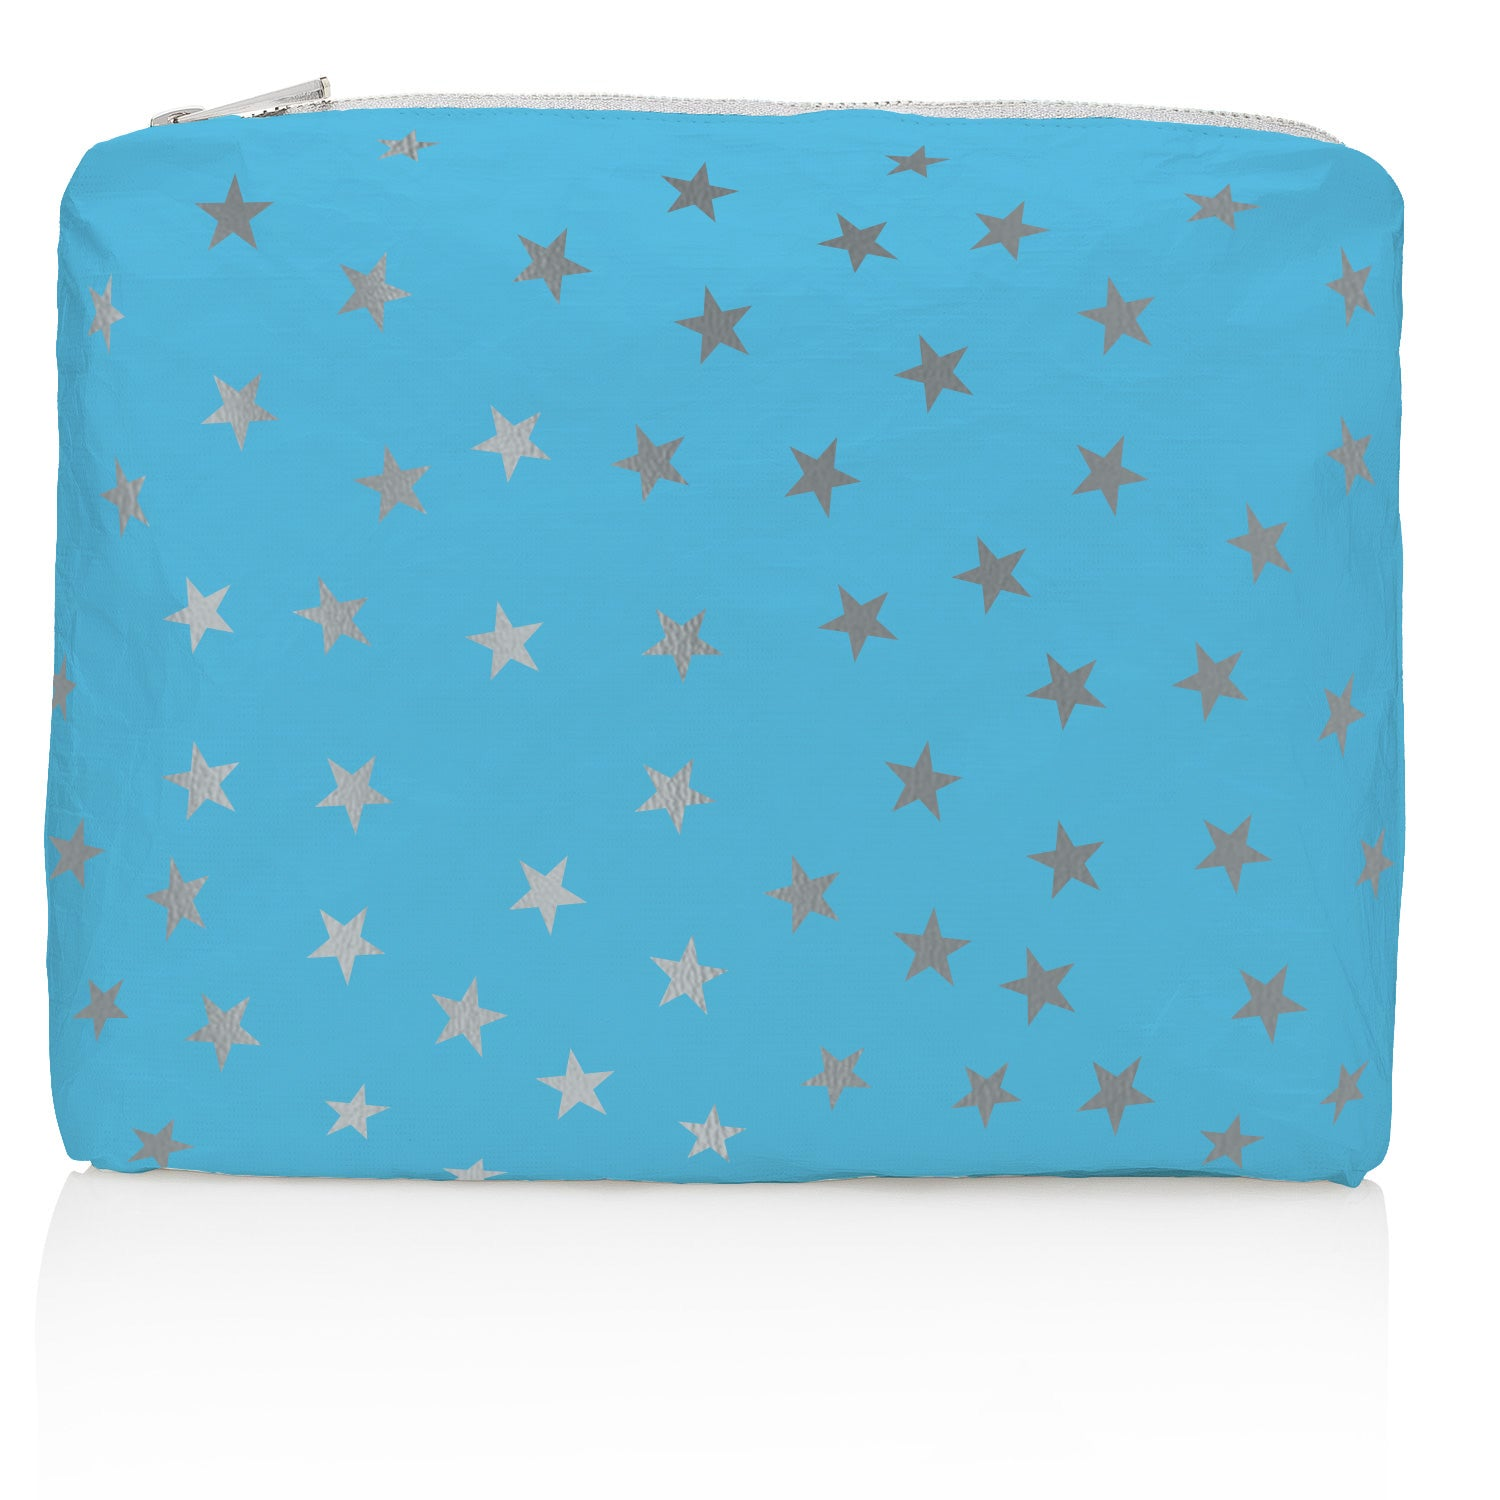 Makeup Pouch - Beach Bag - Travel Pack - Medium Pack - Sky Blue with Myriad Silver Stars